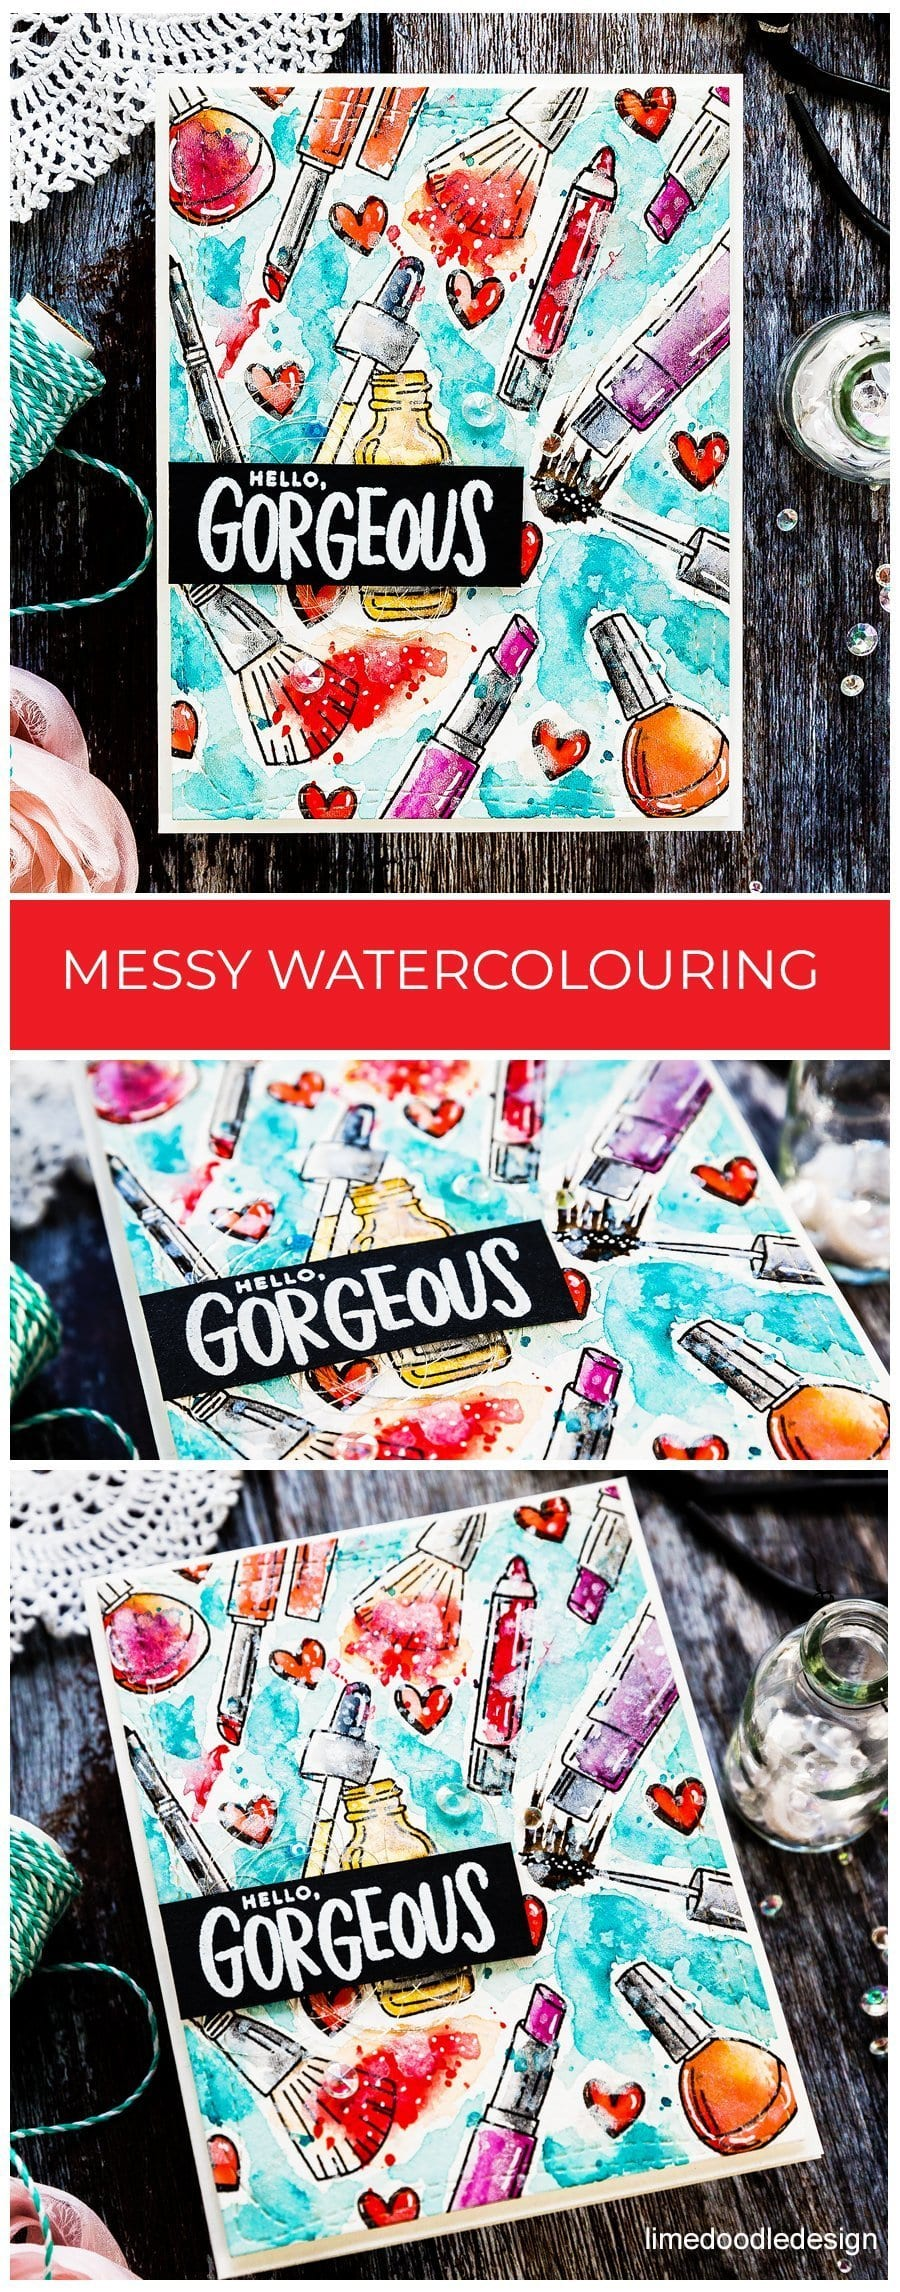 Messy watercoloured makeup background handmade card by Debby Hughes using supplies from Simon Says Stamp. Find out more here: https://limedoodledesign.com/2019/04/video-messy-watercoloured-background/